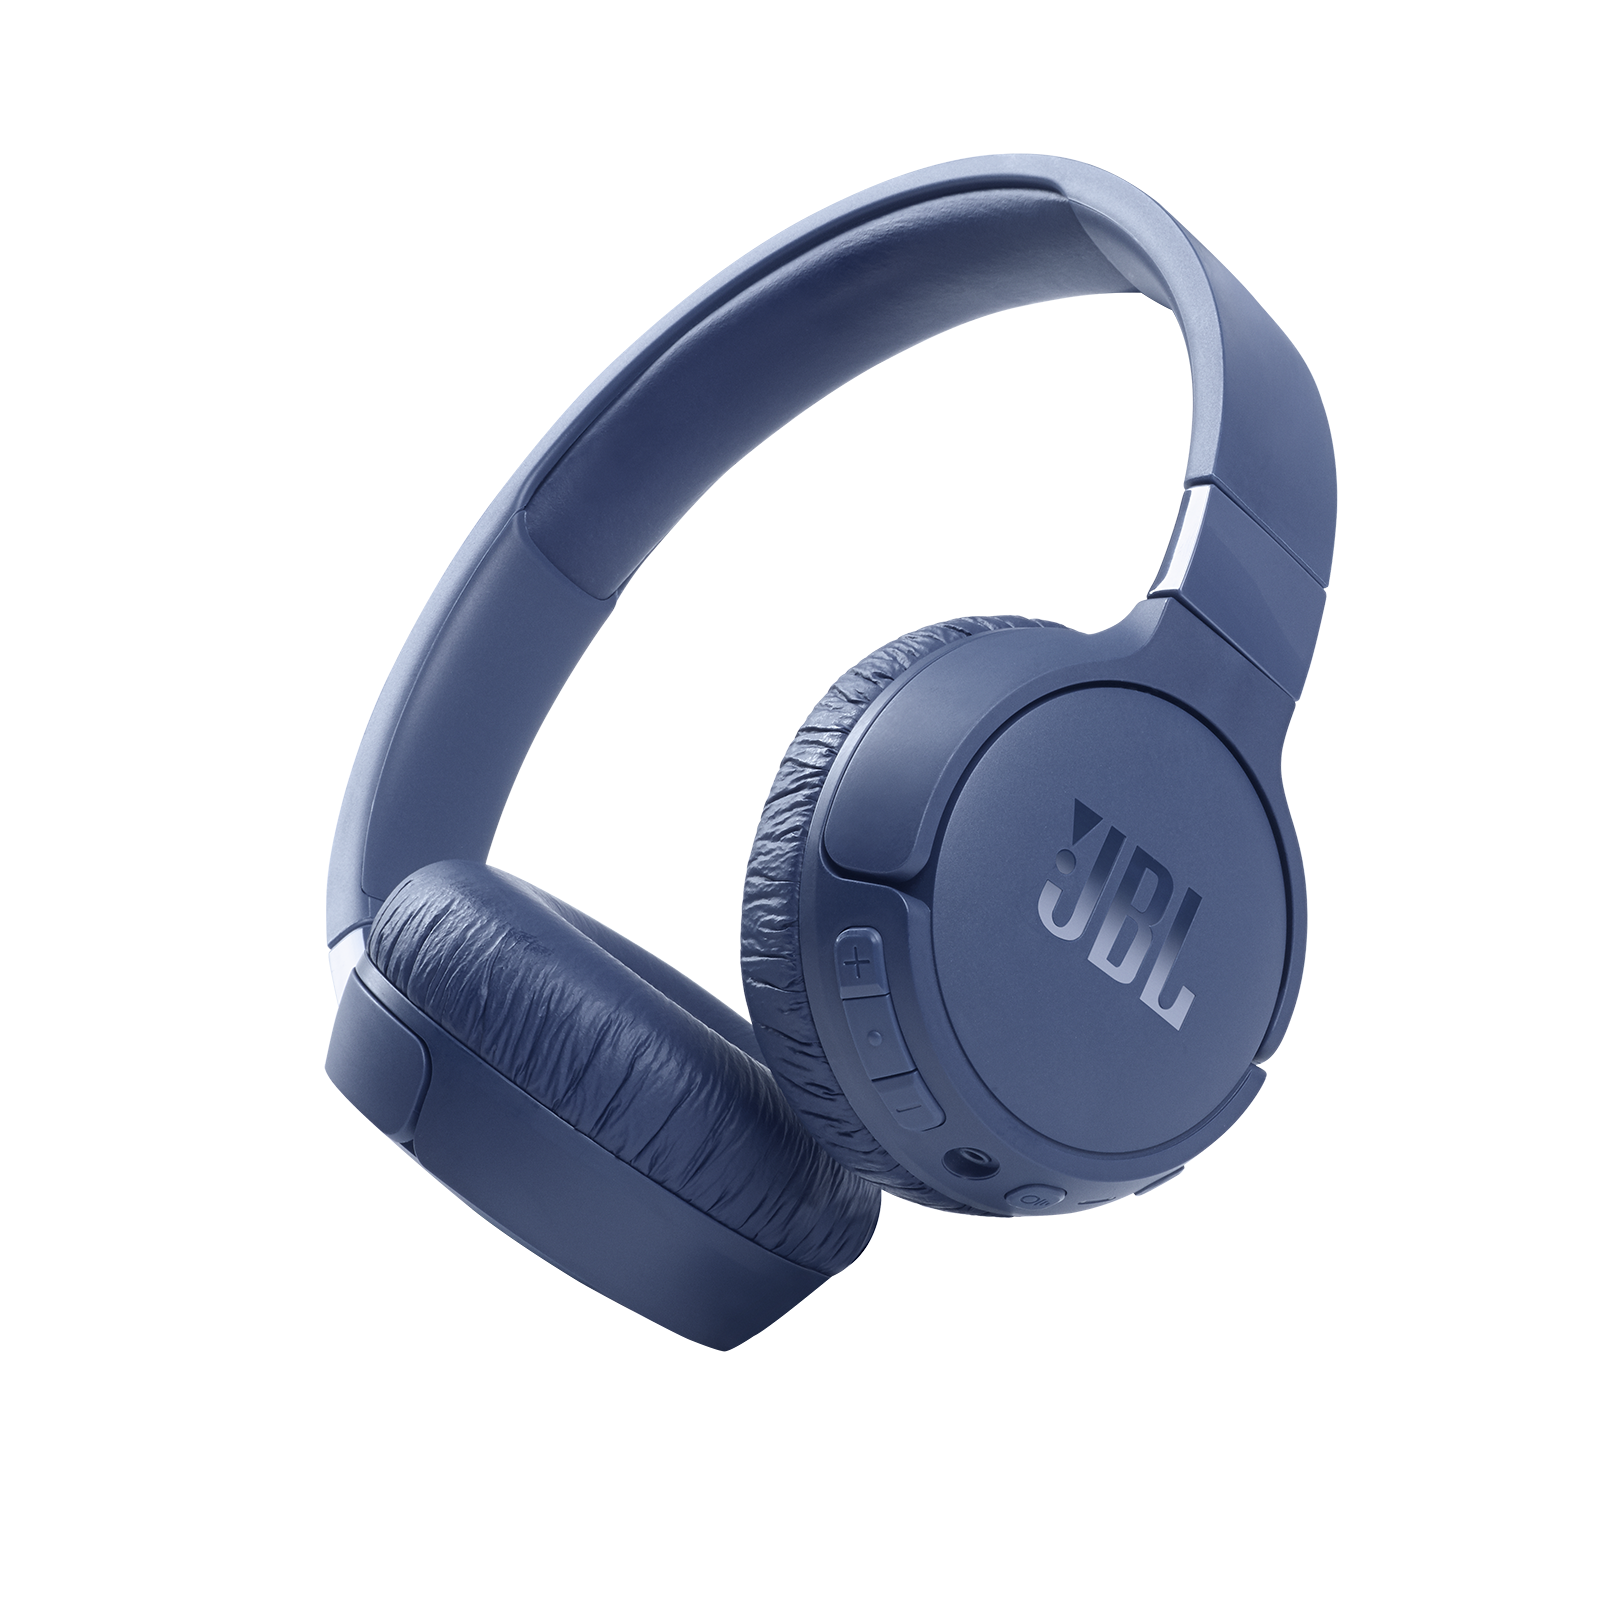 JBL Tune 660NC - Blue - Wireless, on-ear, active noise-cancelling headphones. - Hero